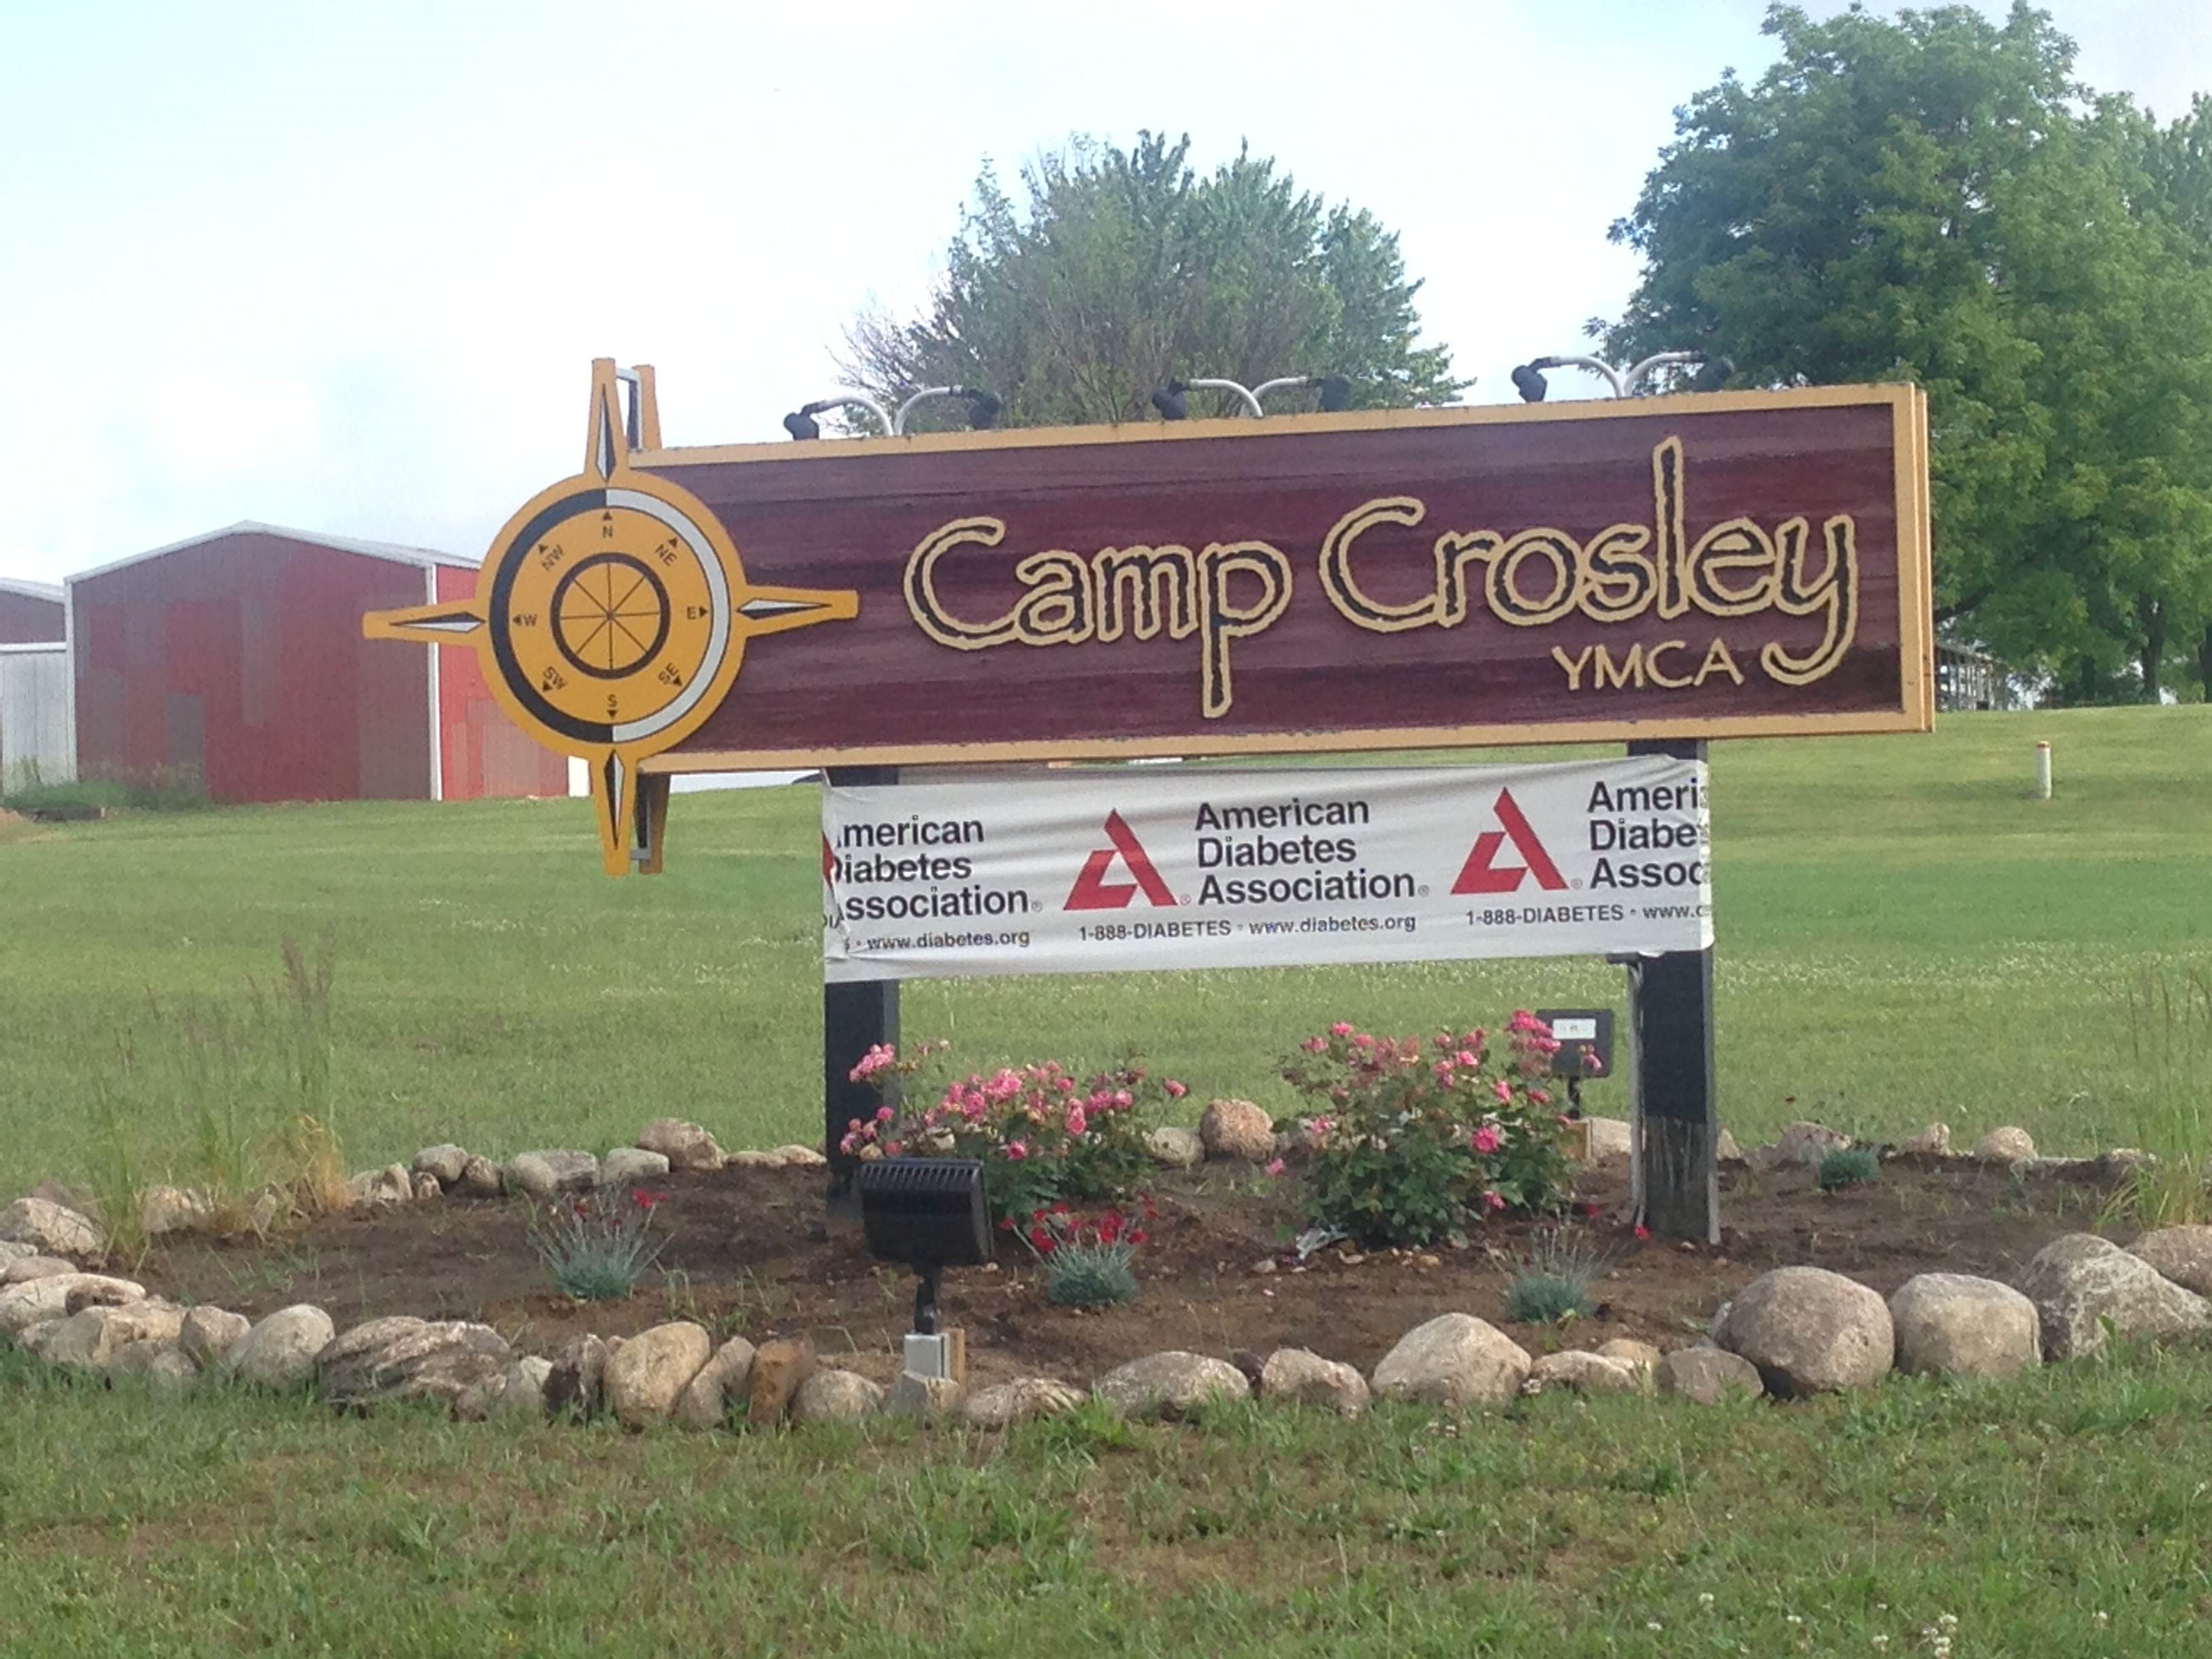 Camp Crosley